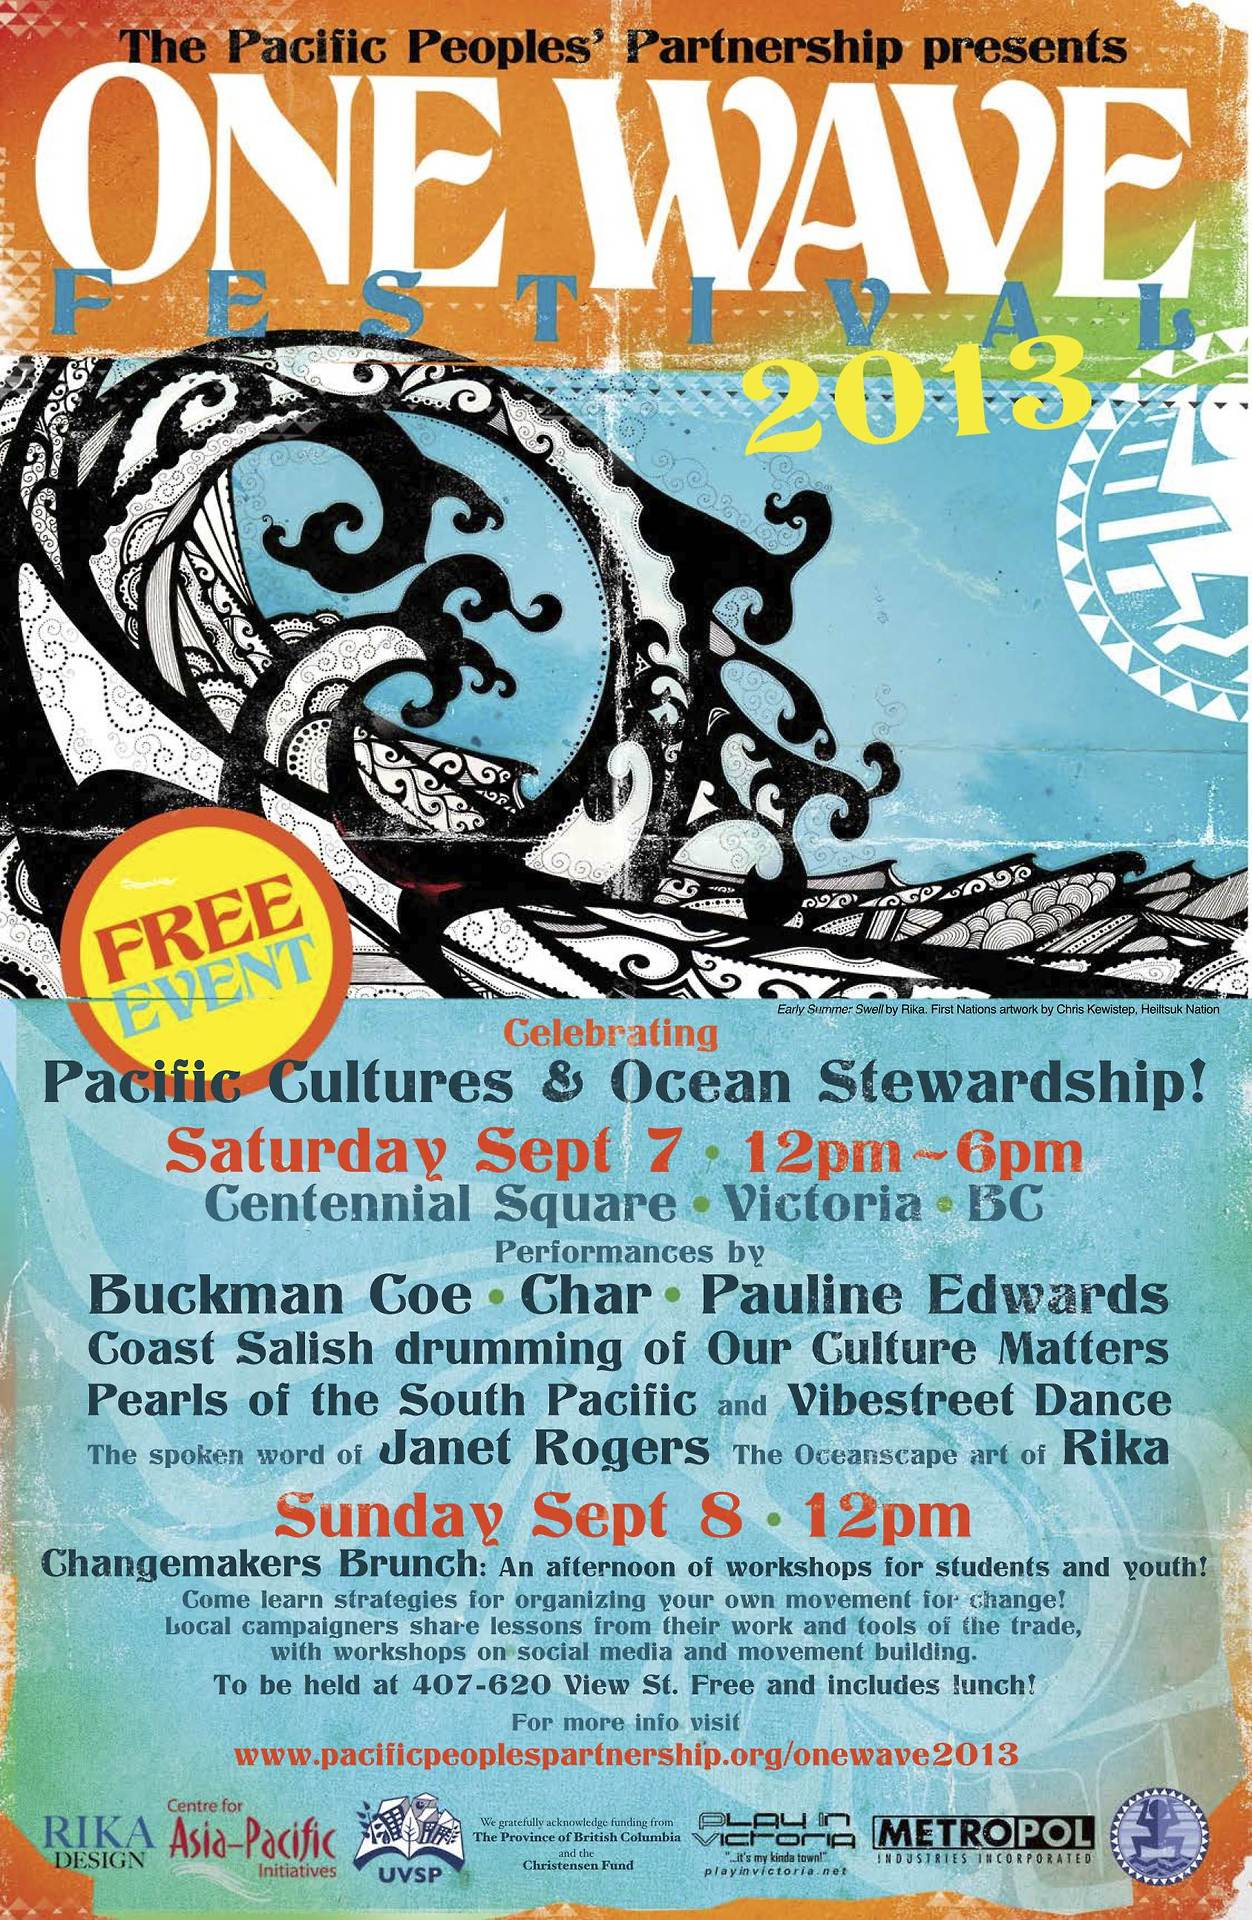 This weekend, we are heading to Victoria BC for a family-friendly festival celebrating our common connections with the Pacific Islands. There will be music, workshops, and speakers exploring how food and water security, climate change and ocean stewardship are affecting Pacific communities North and South. It's an honour to be invited to this event and I'm excited to be on the Islands this weekend!